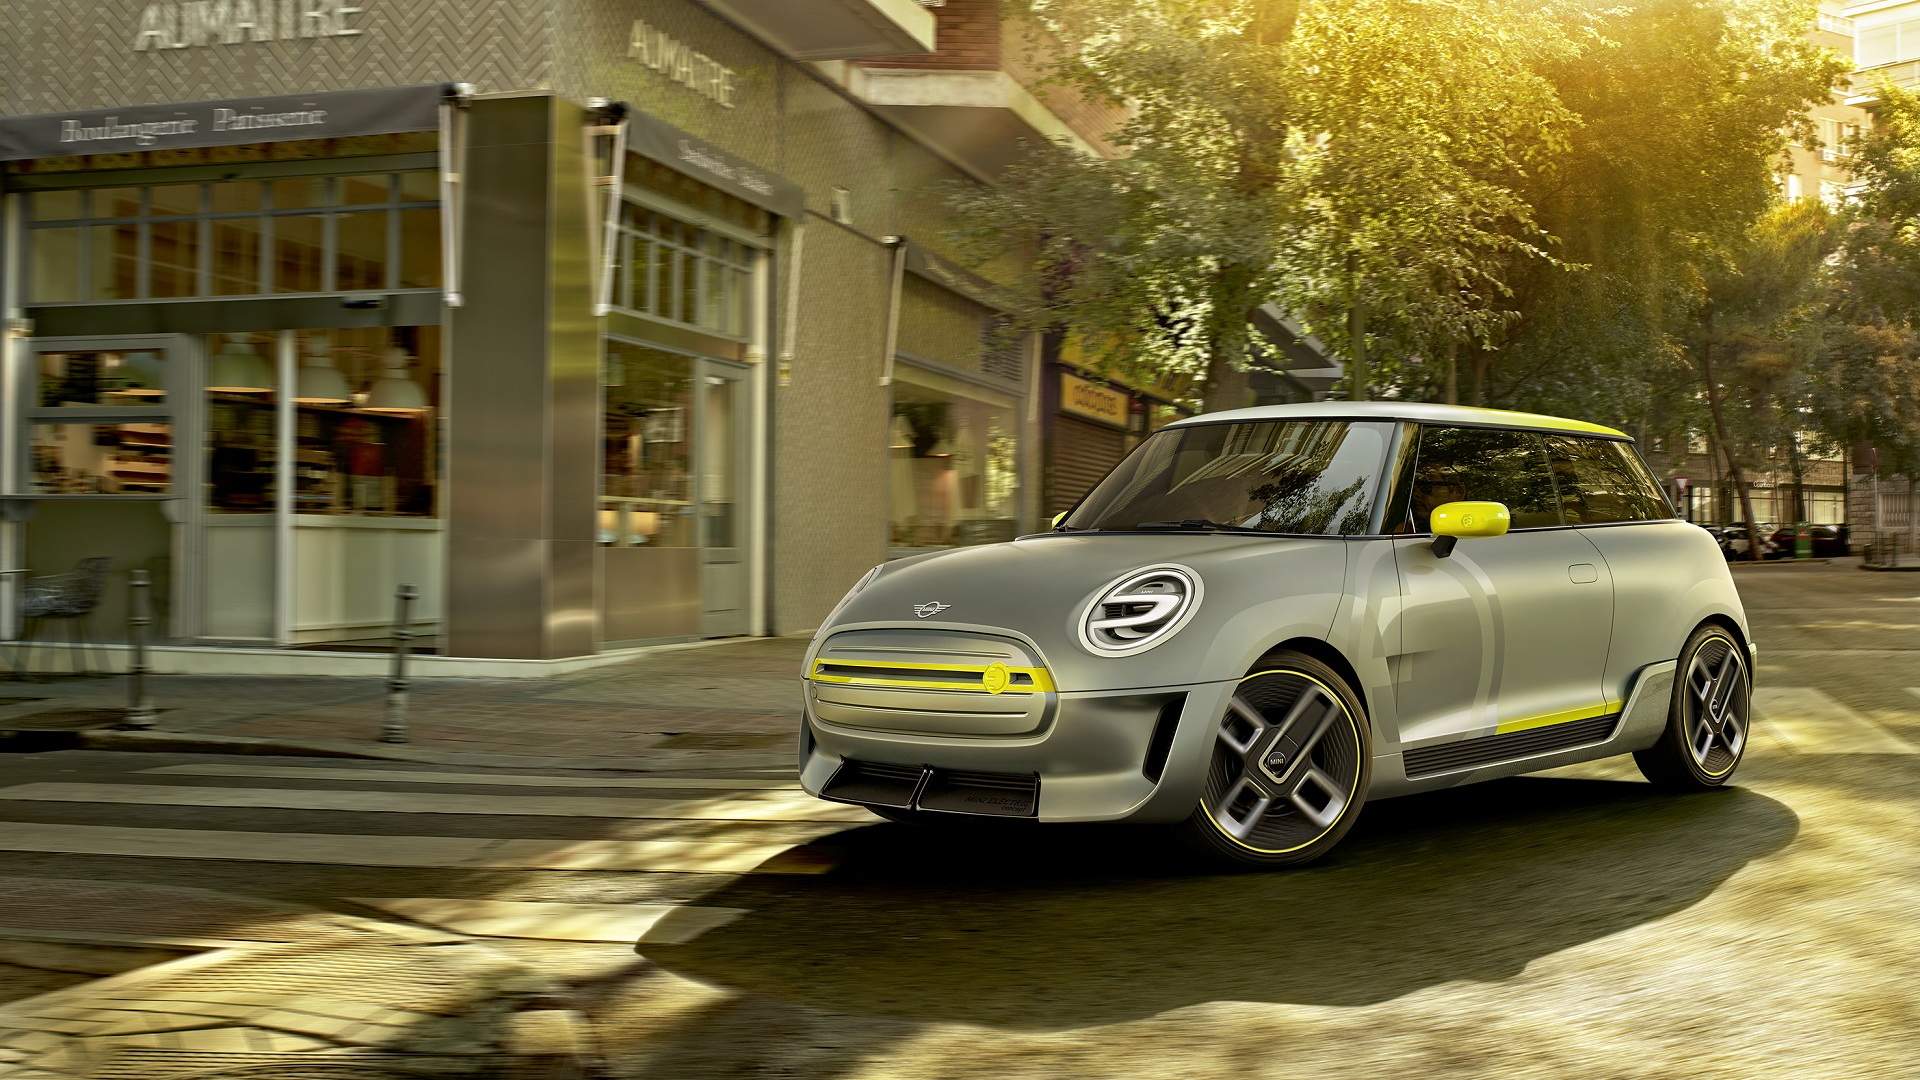 2020 Mini Cooper S E: Speedy electric hatchback due for Mini's 60th